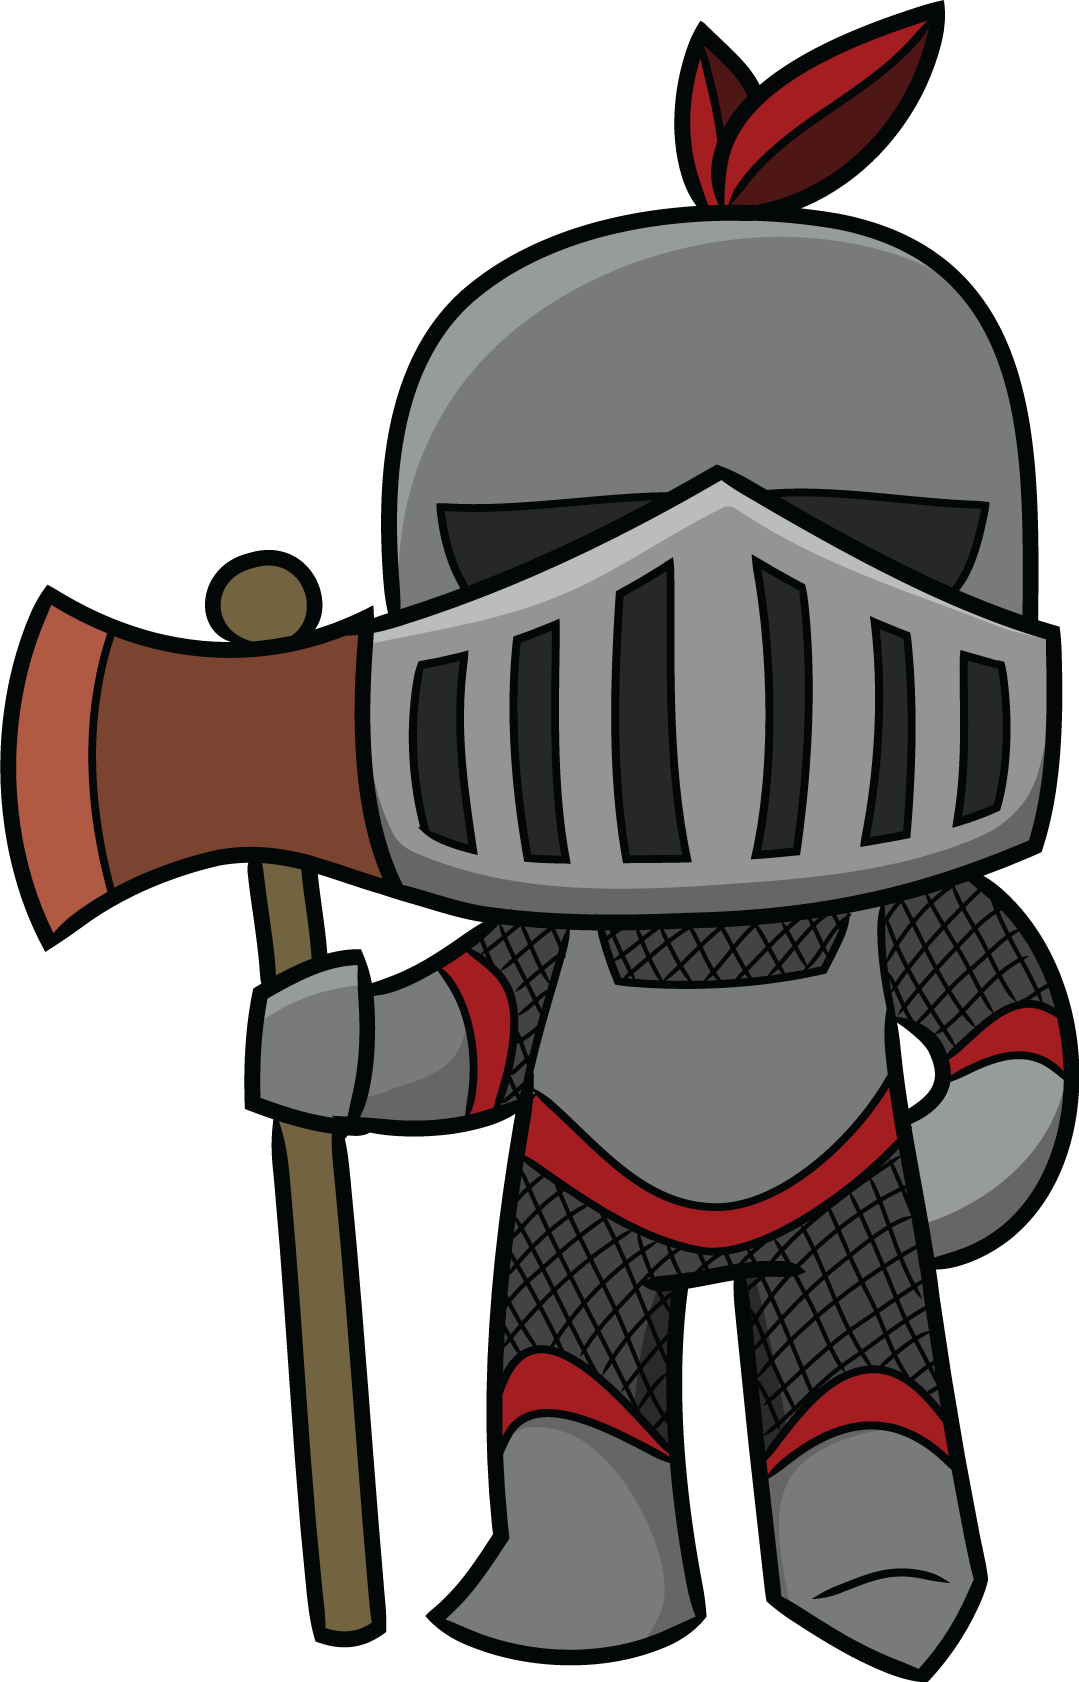 1079x1682 Middle Ages Knight Cartoon Clip Art